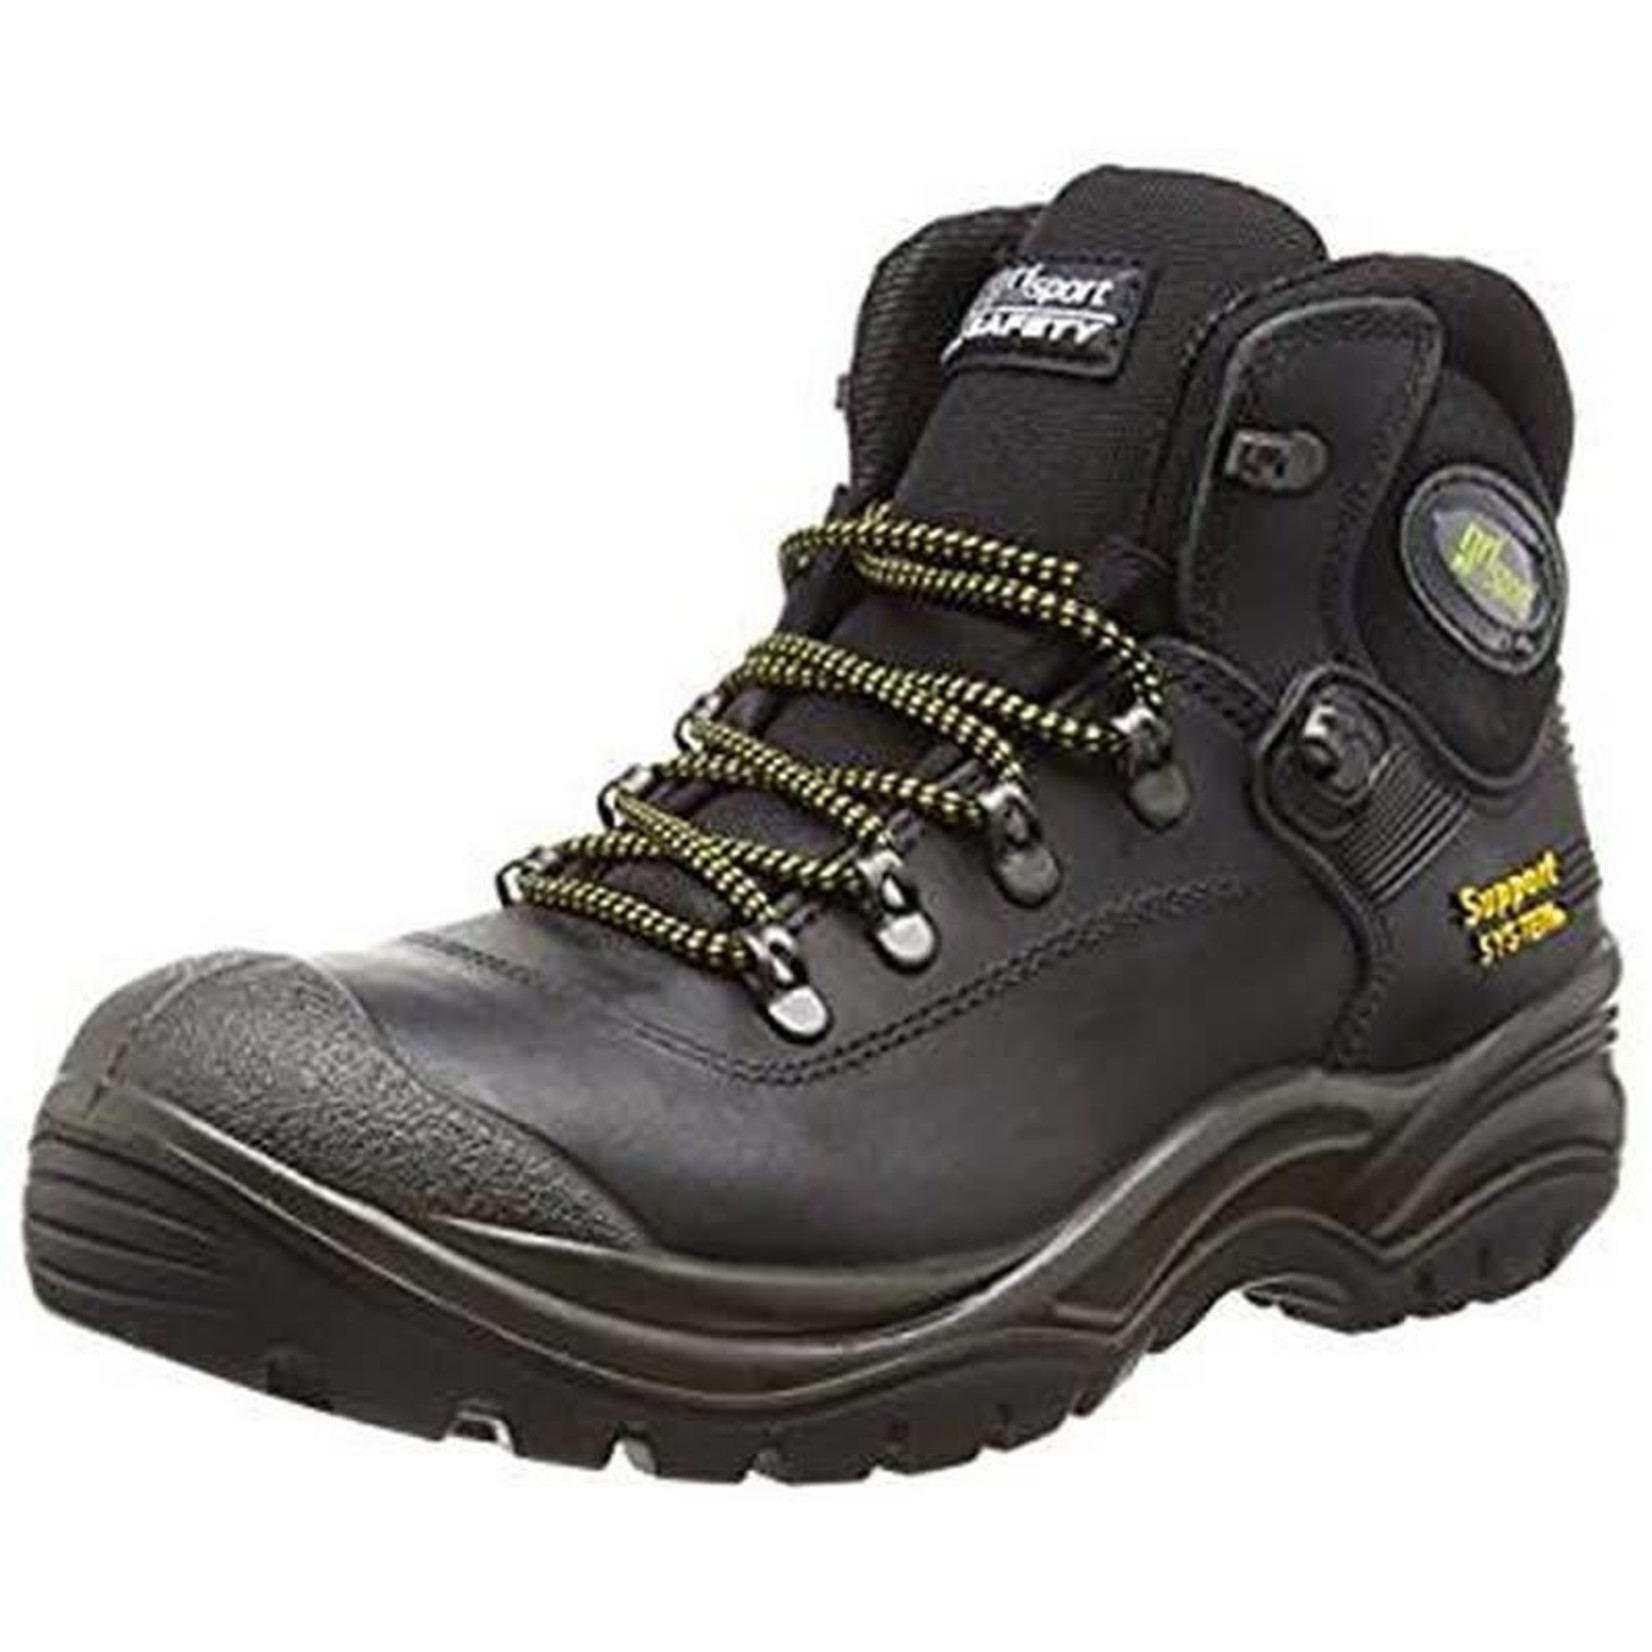 CONTRACTOR BOOT STEEL TOE TOECAP SAFETY BOOTS SIZE 45 (11) BLACK